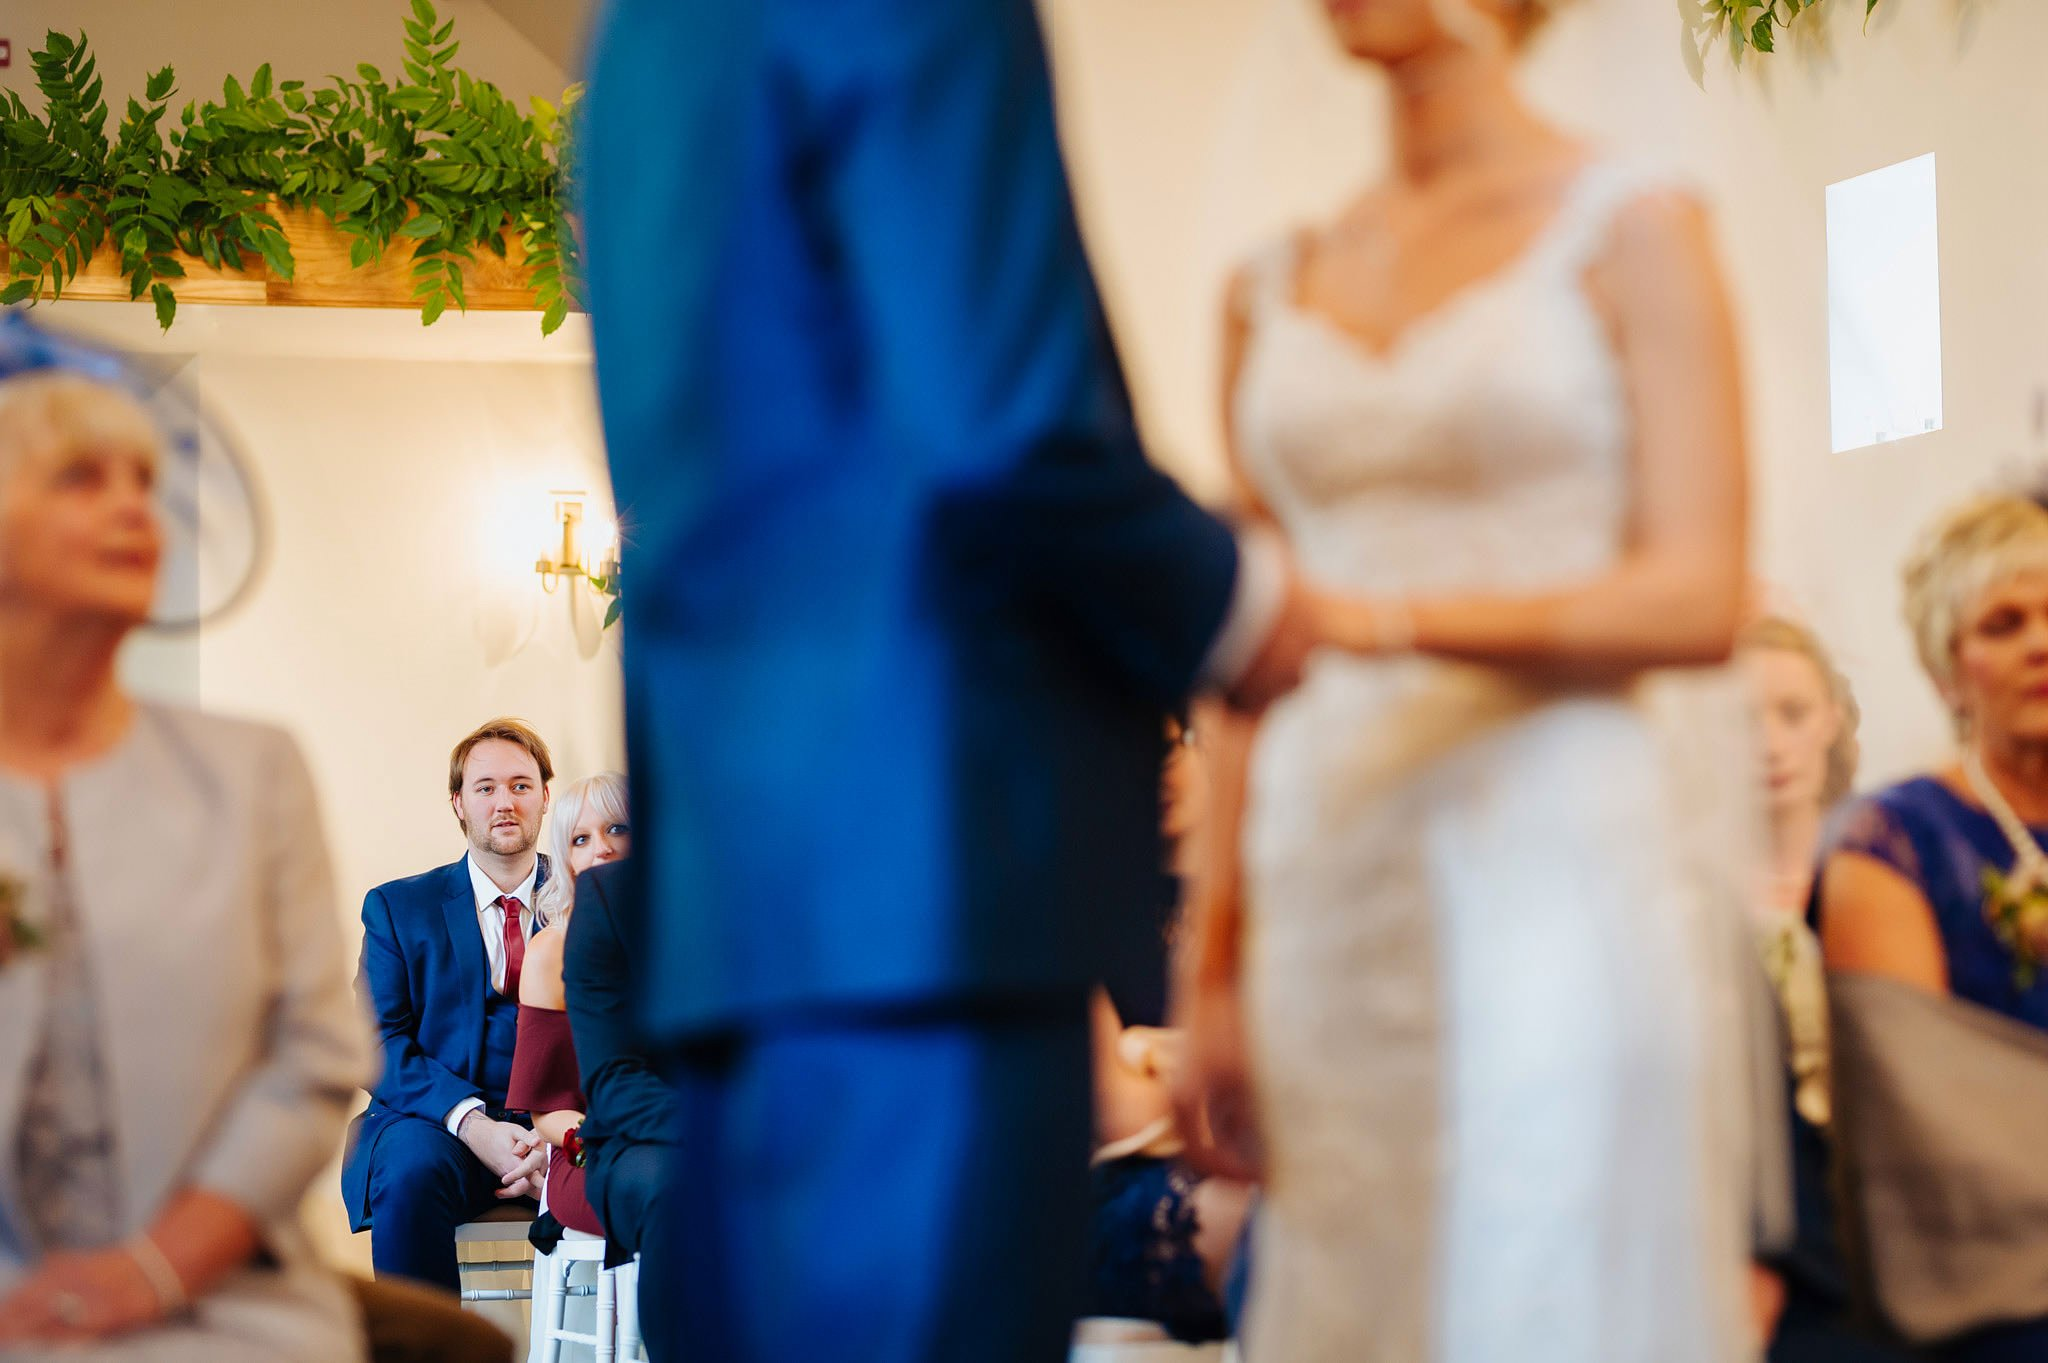 Sigma 85mm F1.4 ART review vs Wedding Photography 8